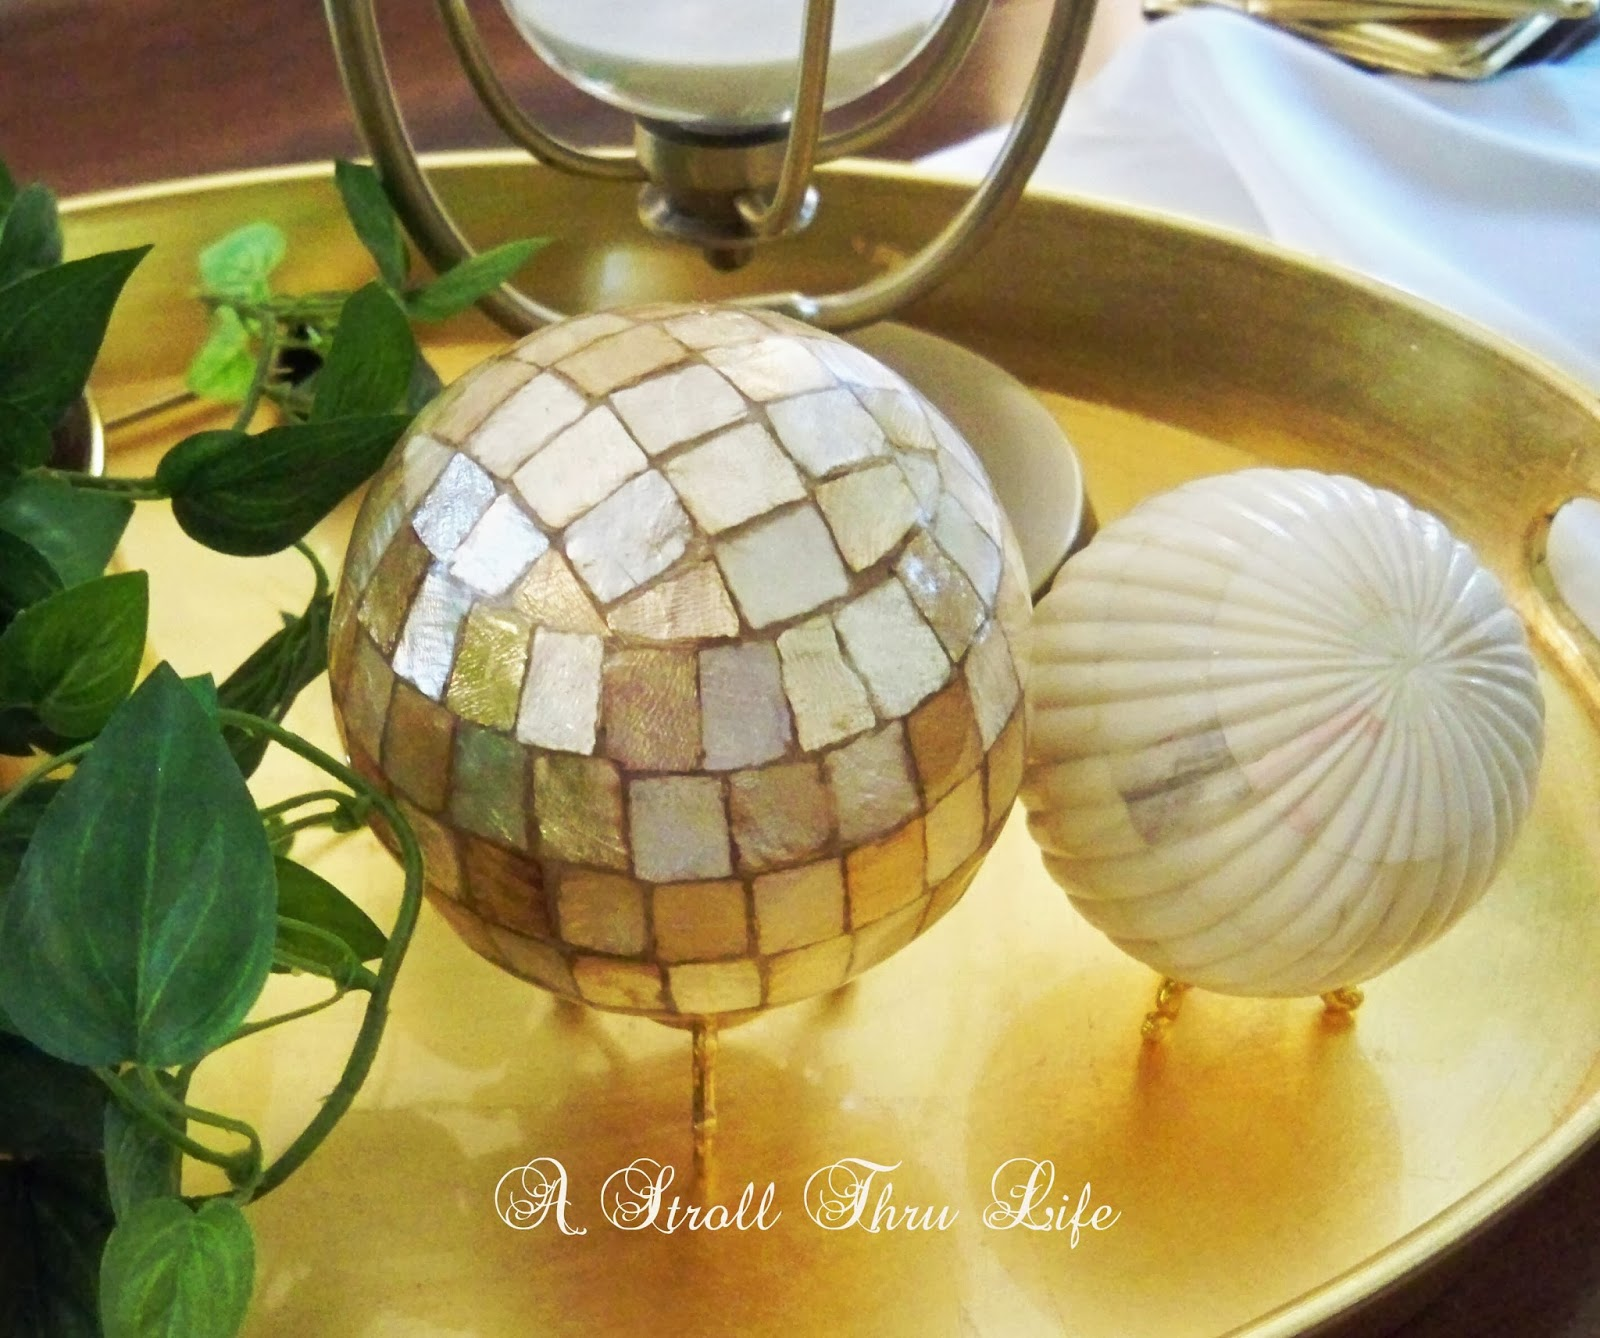 Marble orbs and gold leaf trays at A Stroll Thru Life